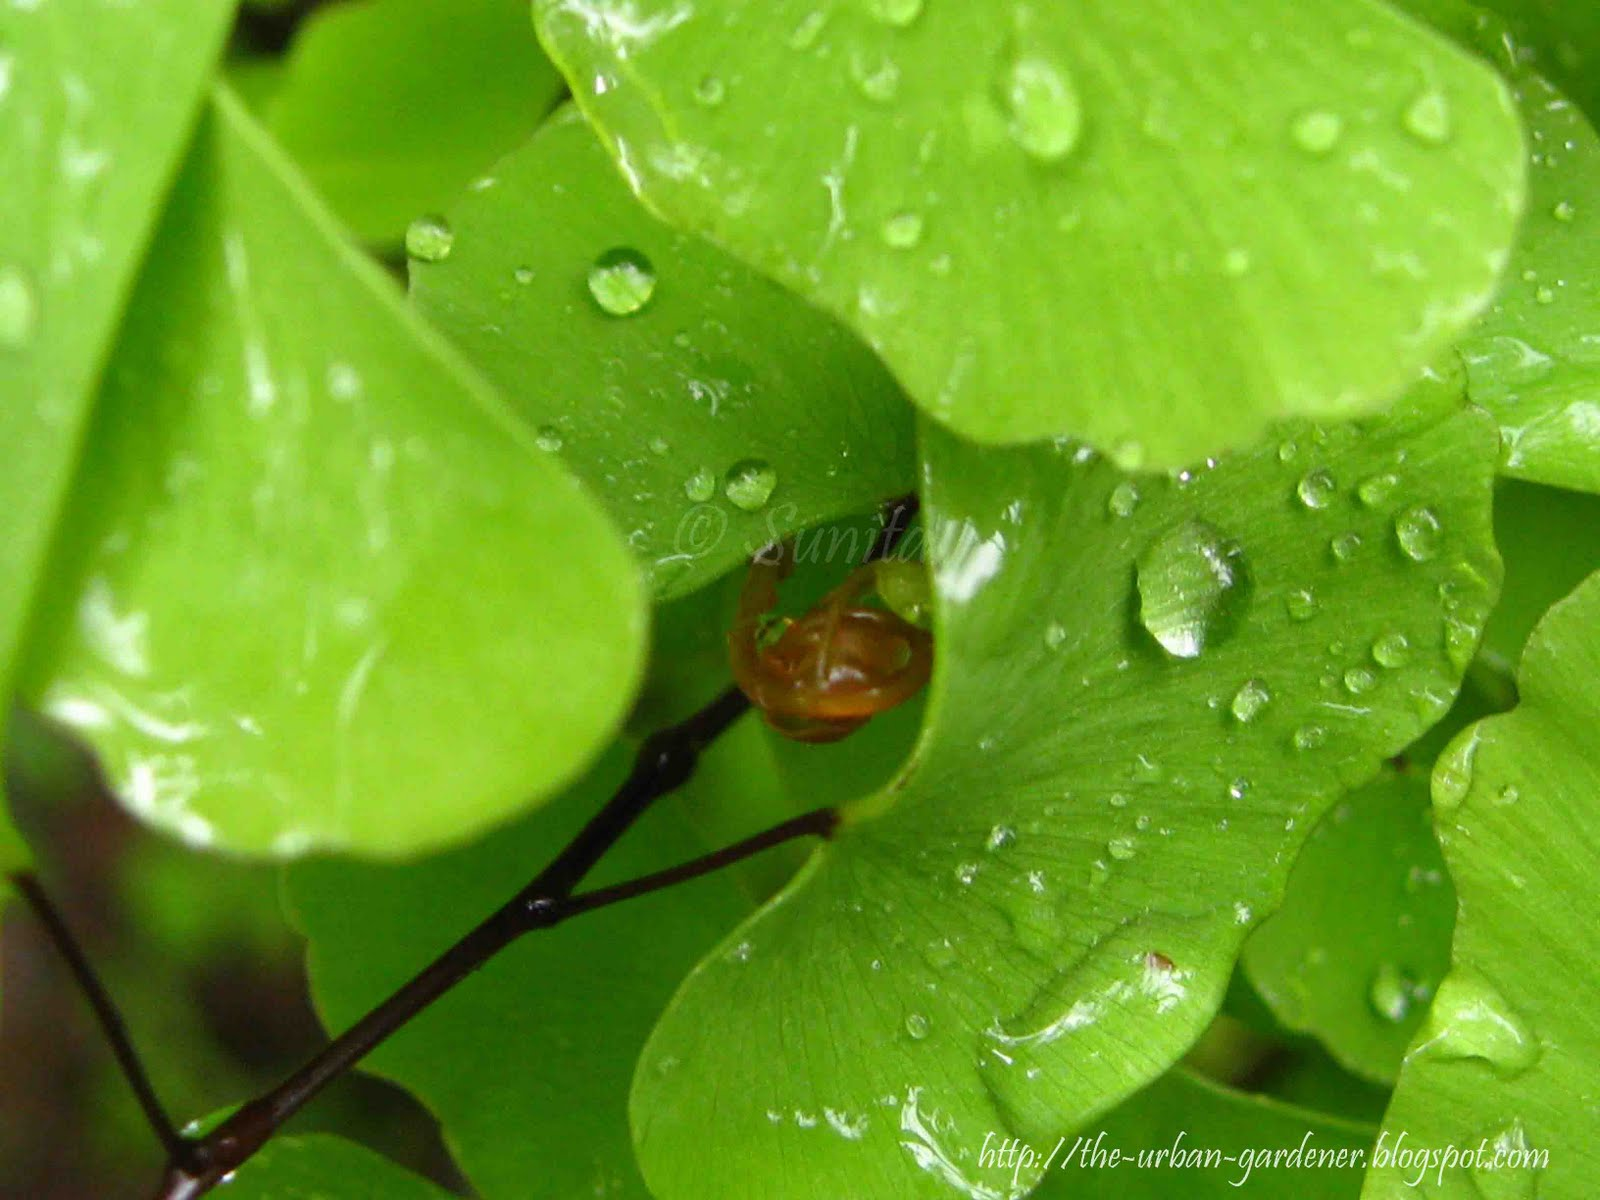 The Urban Gardener: It's a wet, green world!